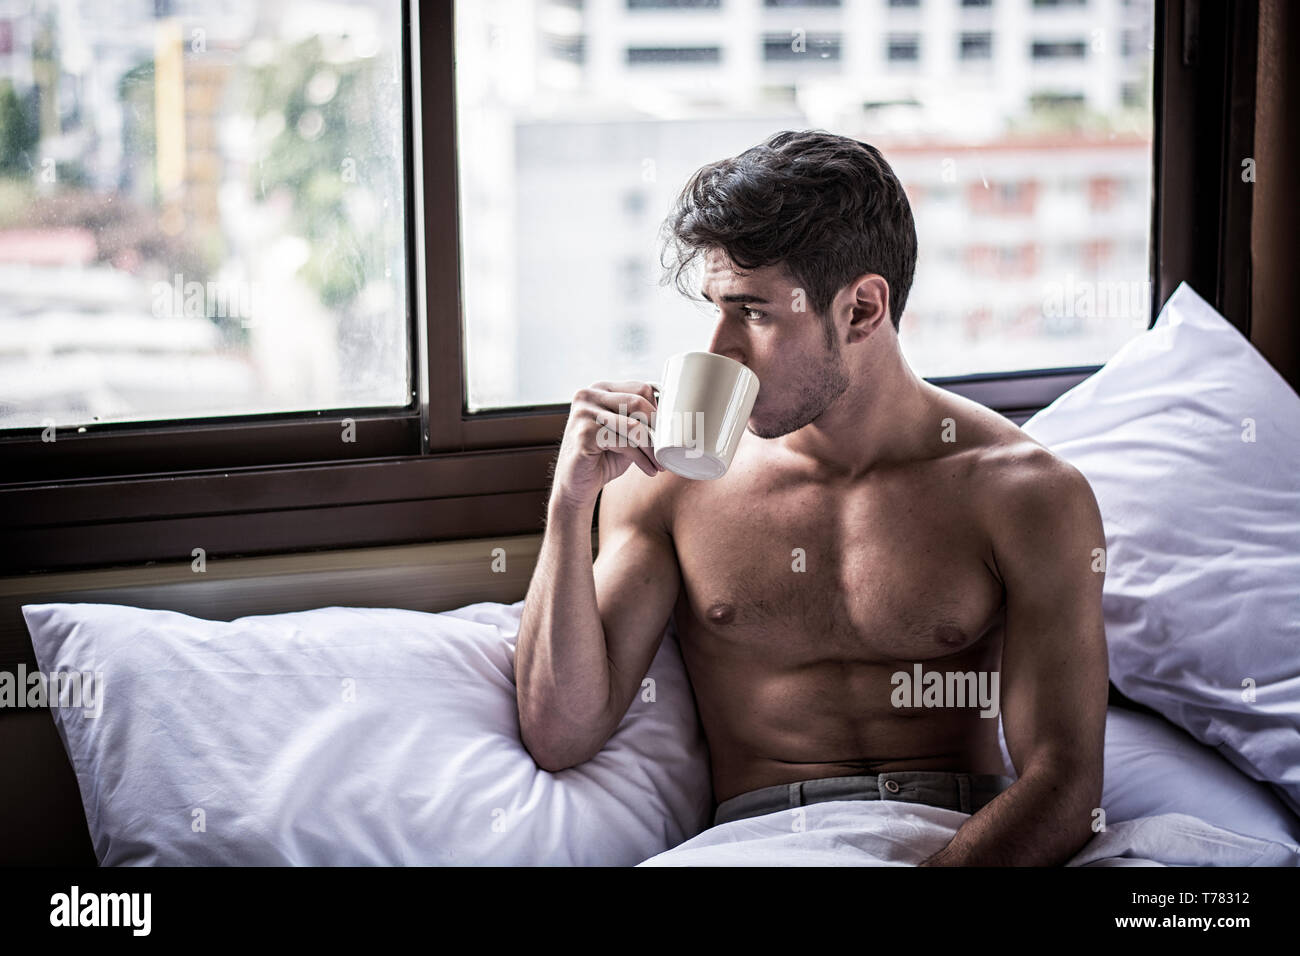 Naked young man with muscular body on bed with mug or cup in hand with coffee or tea Stock Photo